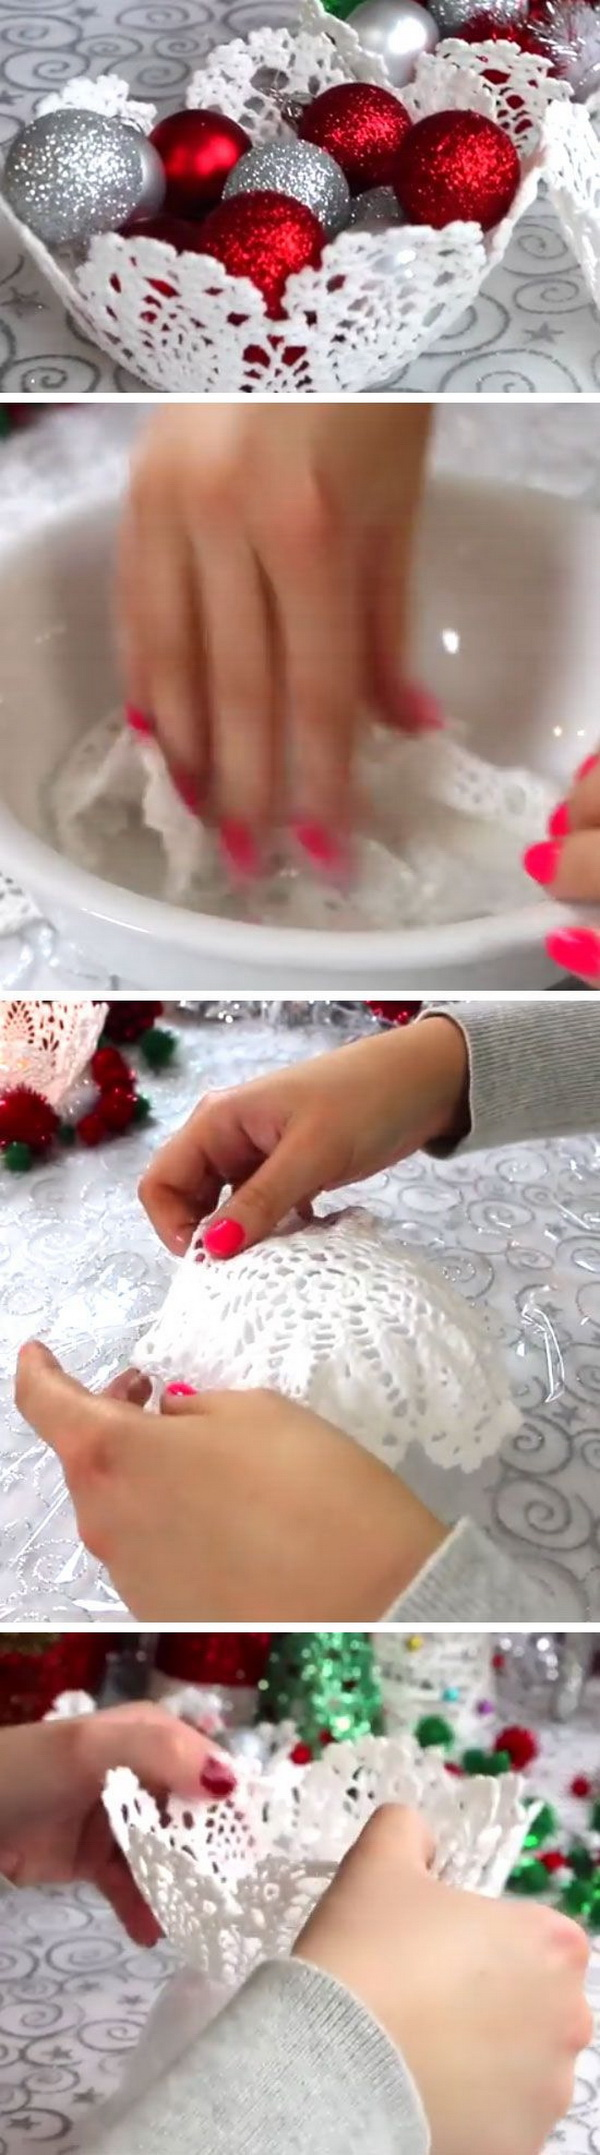 DIY Doily Baskets. Create a doily basket and fill it with some glitter holiday ornaments for decor!